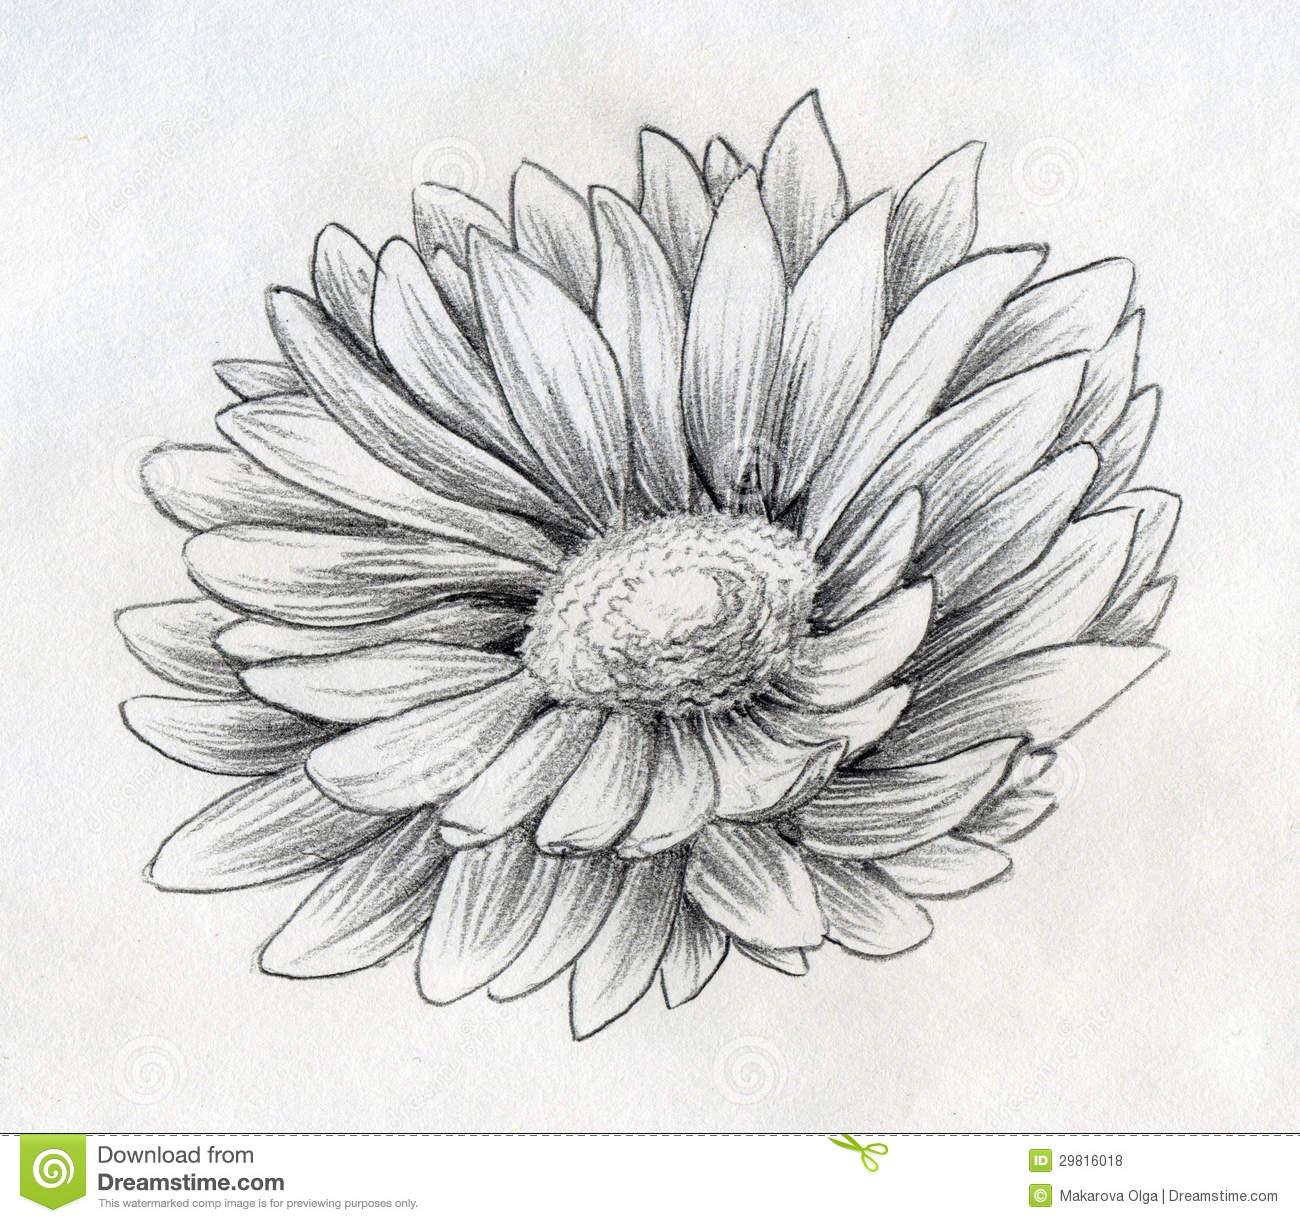 Daisy flower pencil sketch stock illustration illustration of daisy flower pencil sketch izmirmasajfo